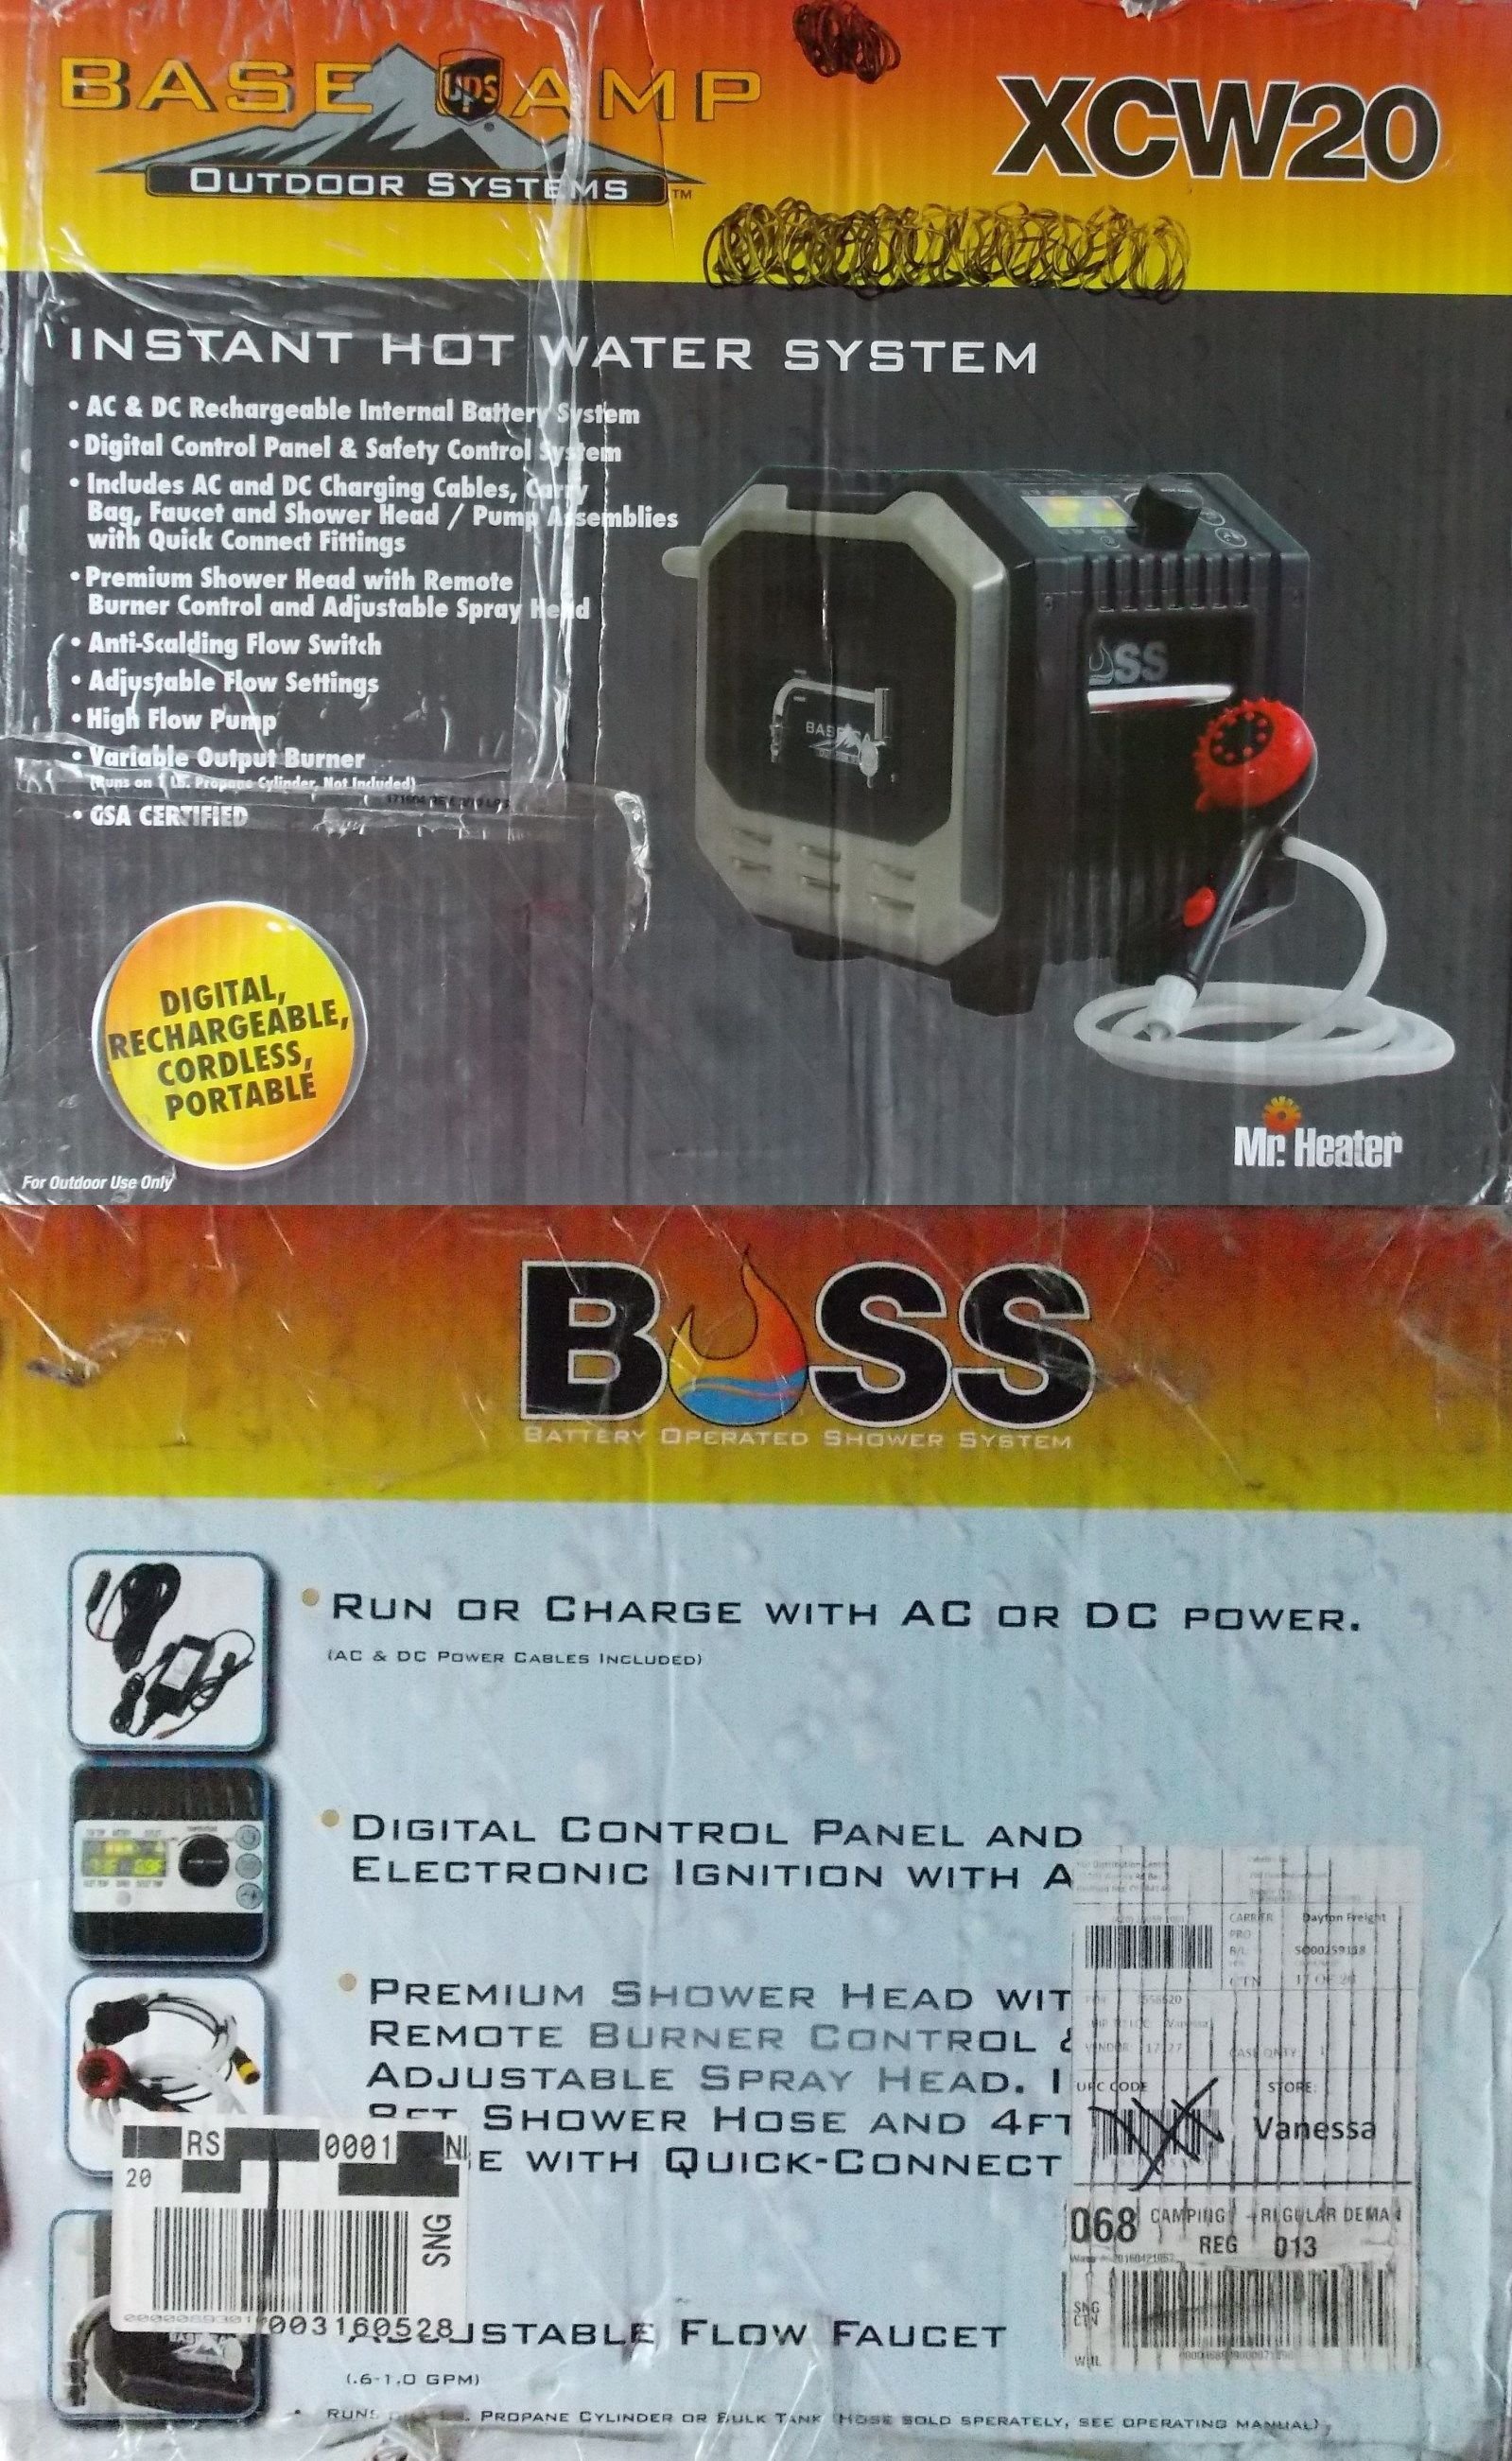 Battery Operated Water Heater Portable Showers And Accessories 181396 Mr Heater Boss Instant